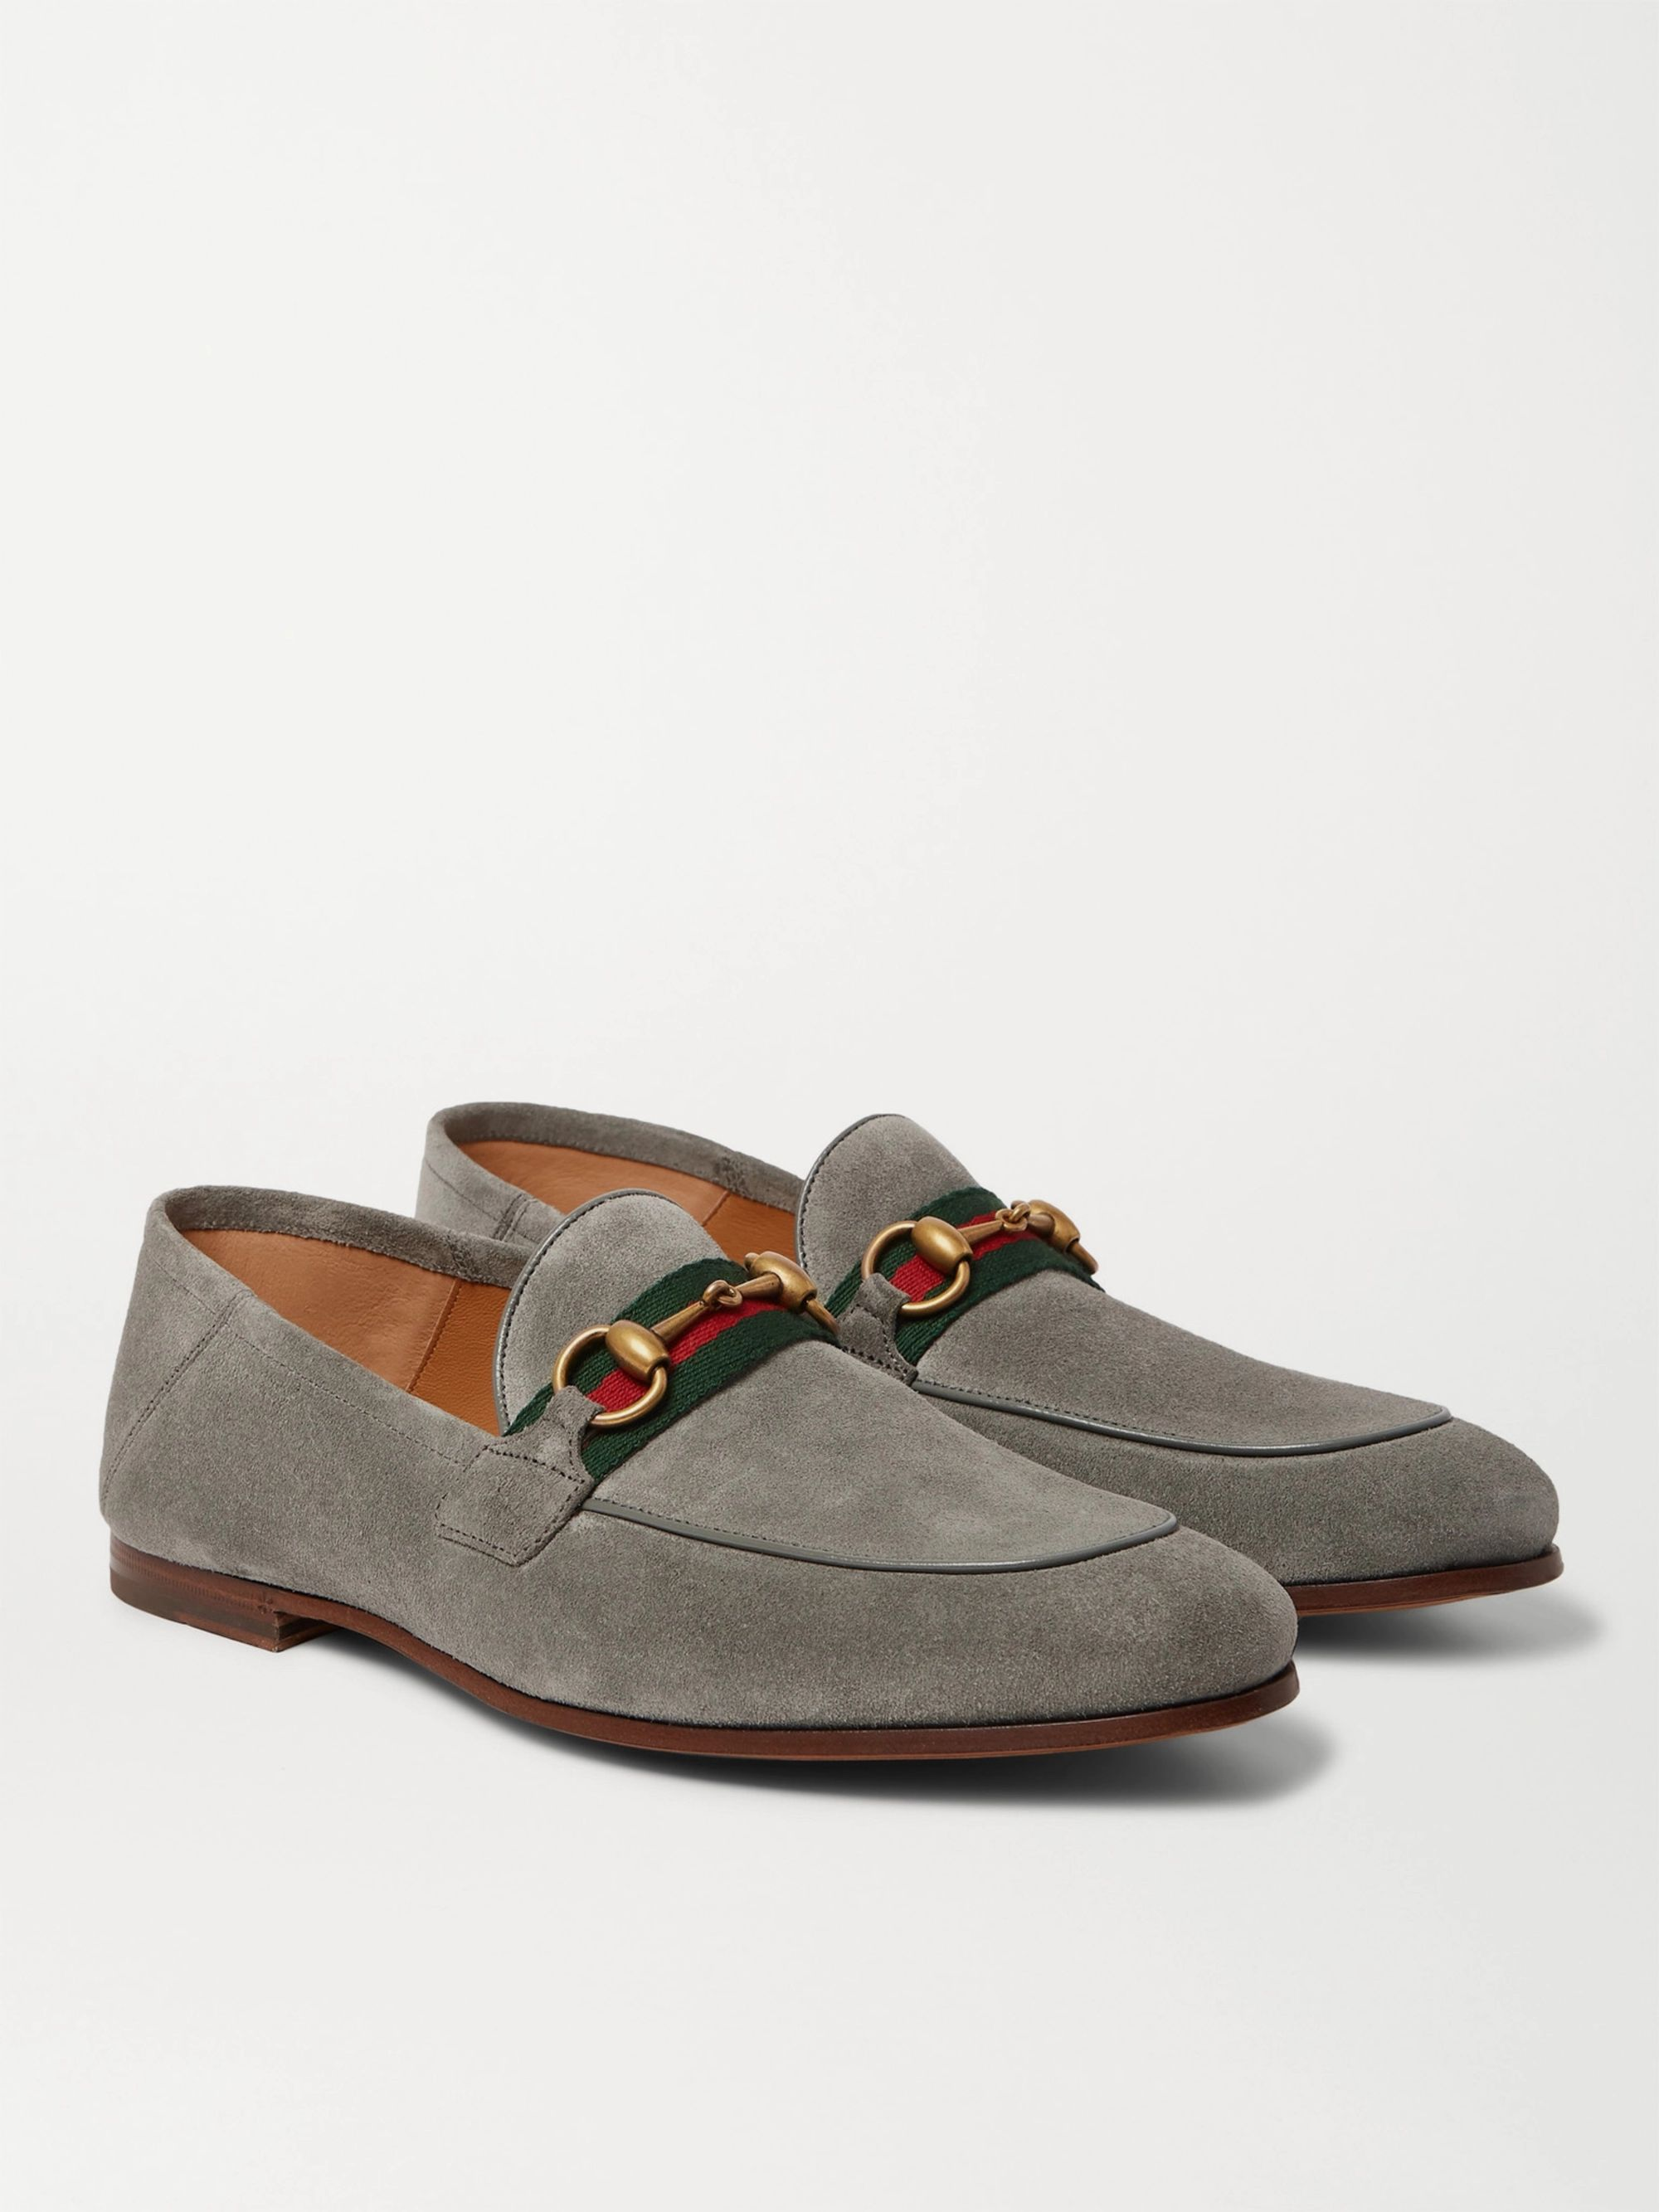 Gucci Brixton Horsebit Webbing-Trimmed Collapsible-Heel Suede Loafers